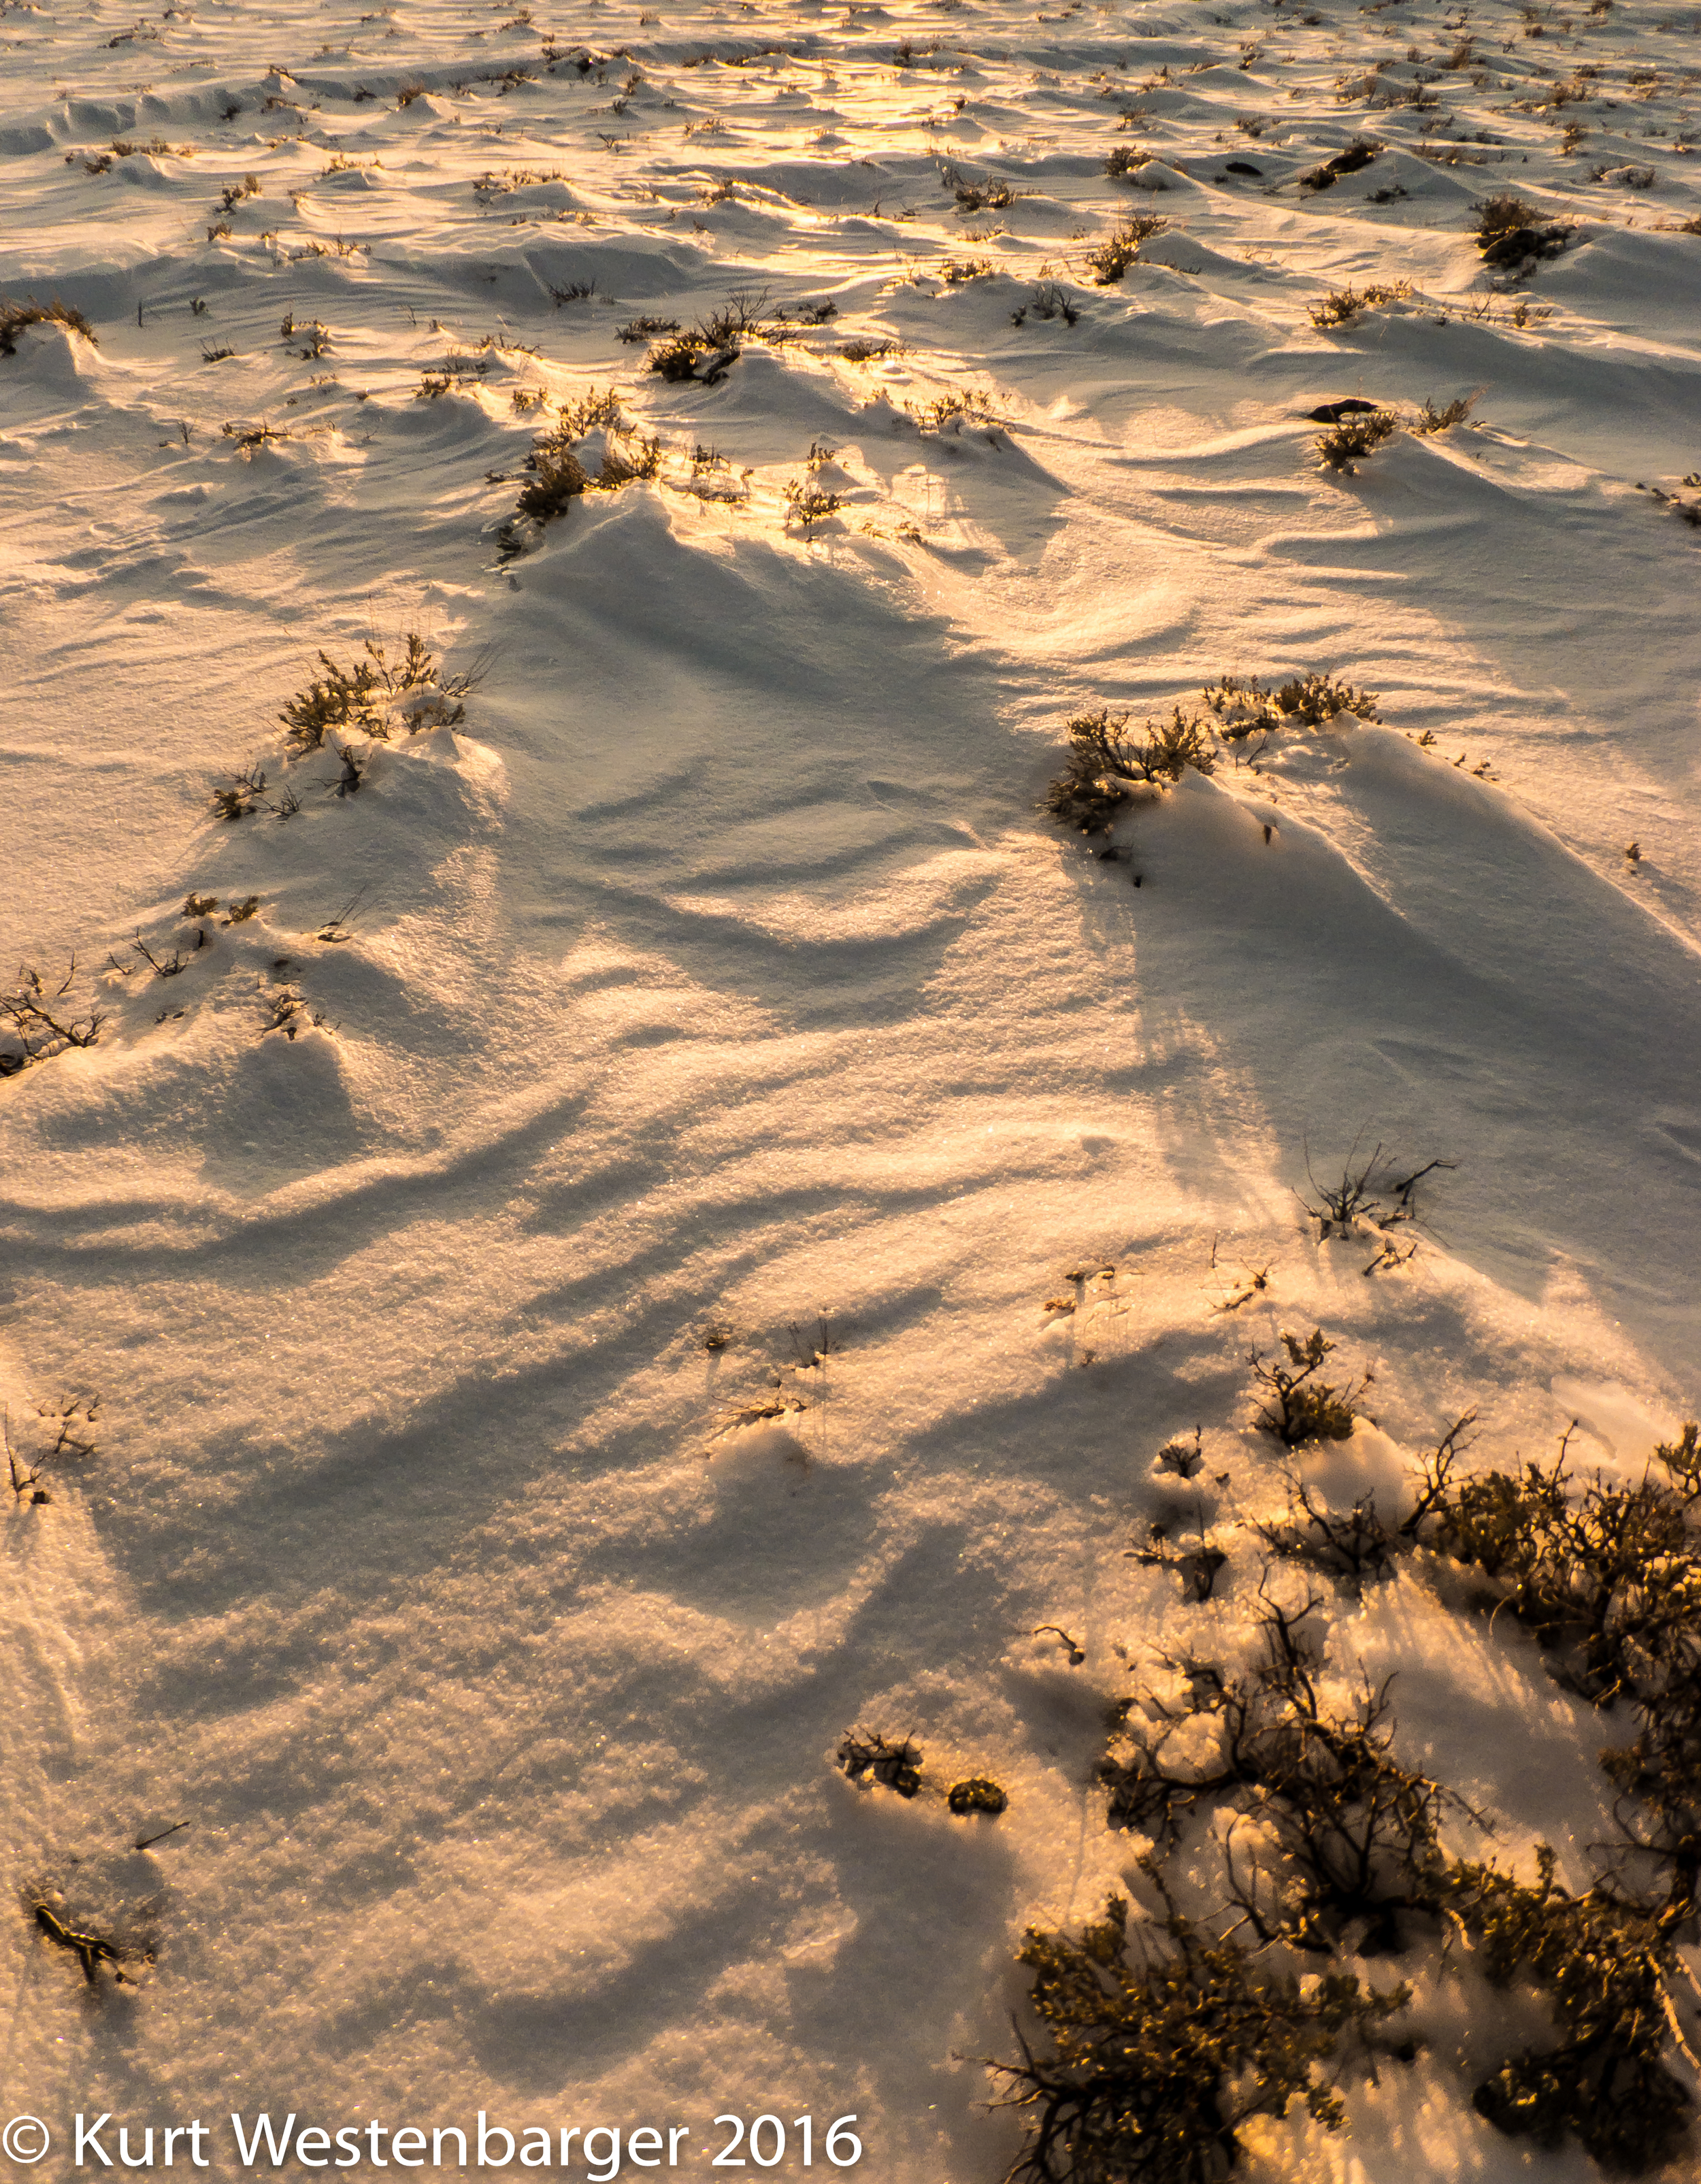 Snow patterns in sunset light.  Fujifilm F900EXR